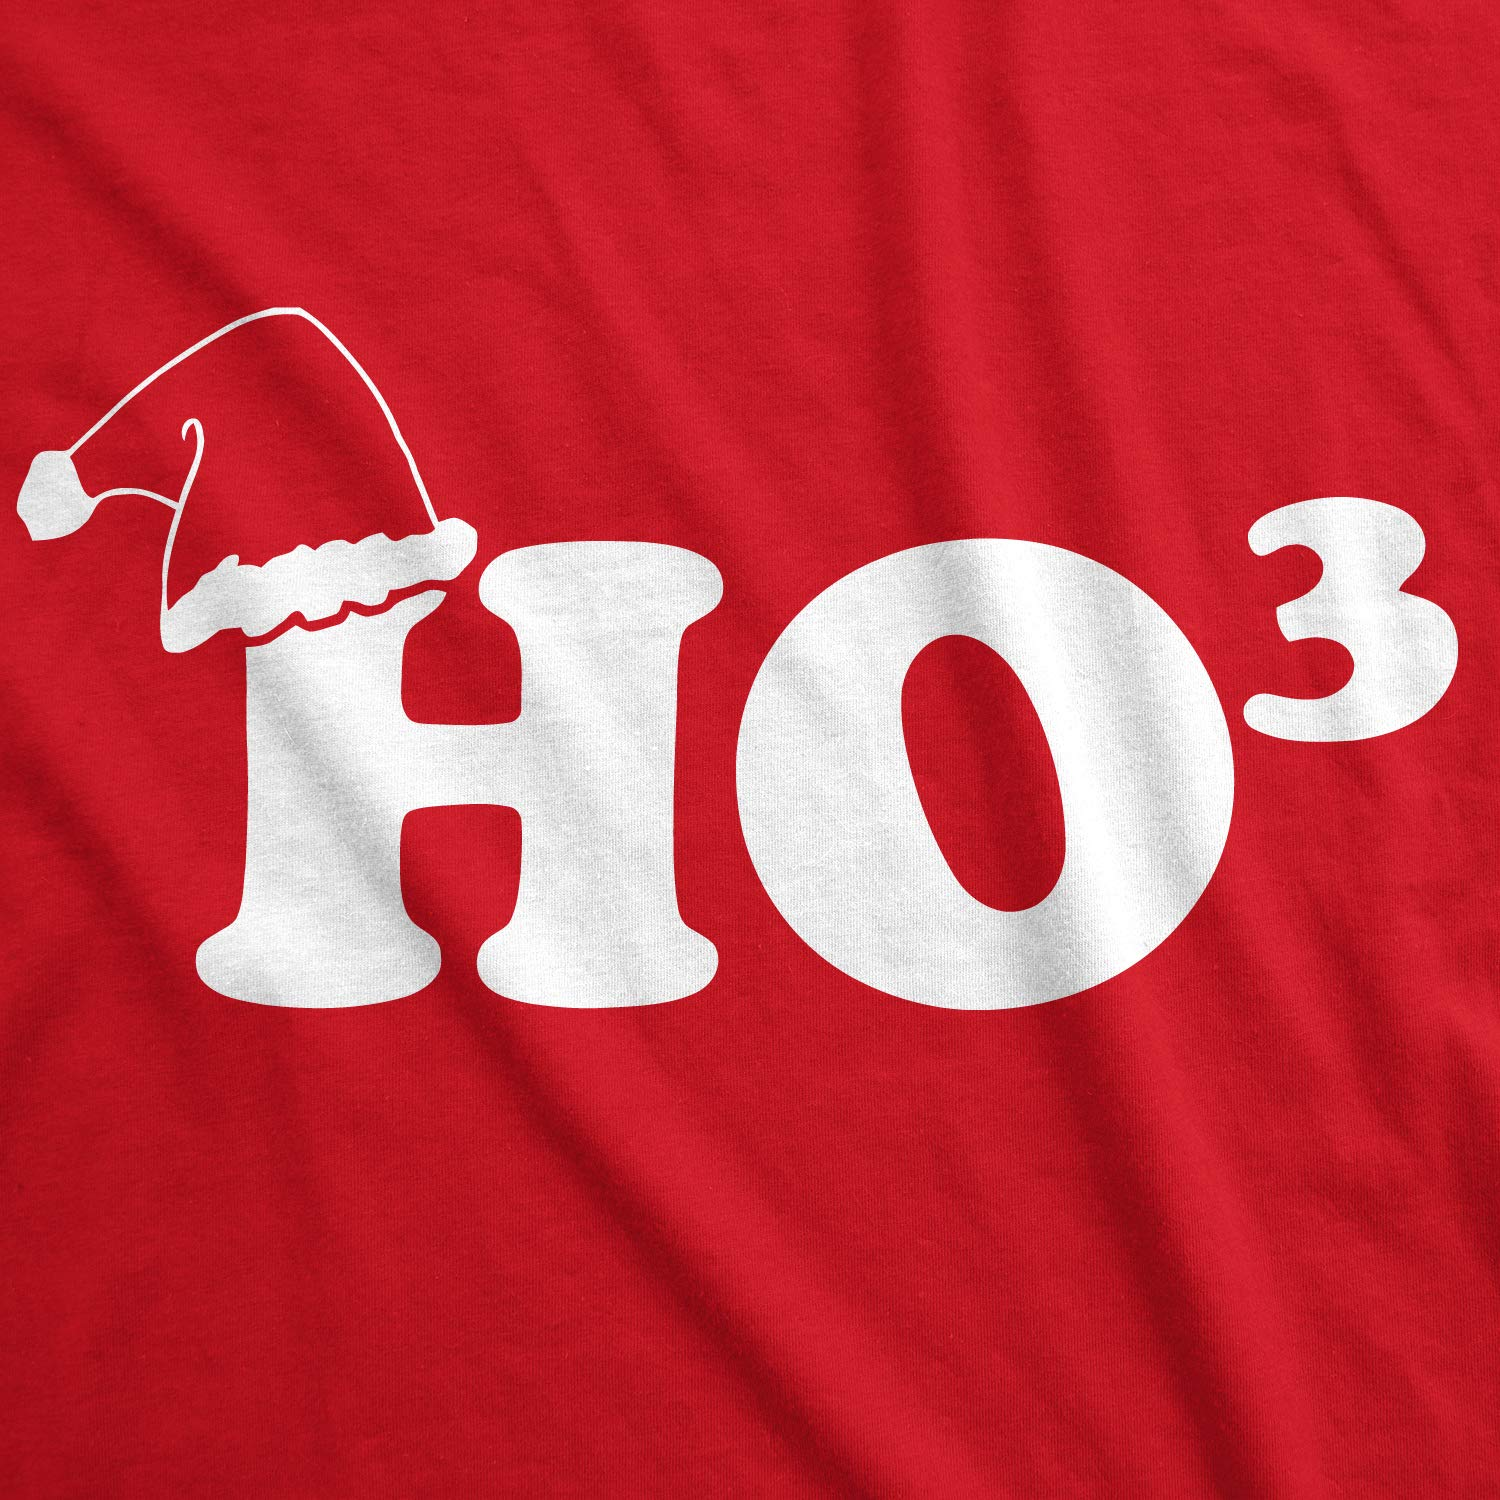 703a93b1 Amazon.com: Ho to The Third Ugly Funny Christmas T Shirt Hohoho Holiday  Xmas Graphic Tees: Clothing